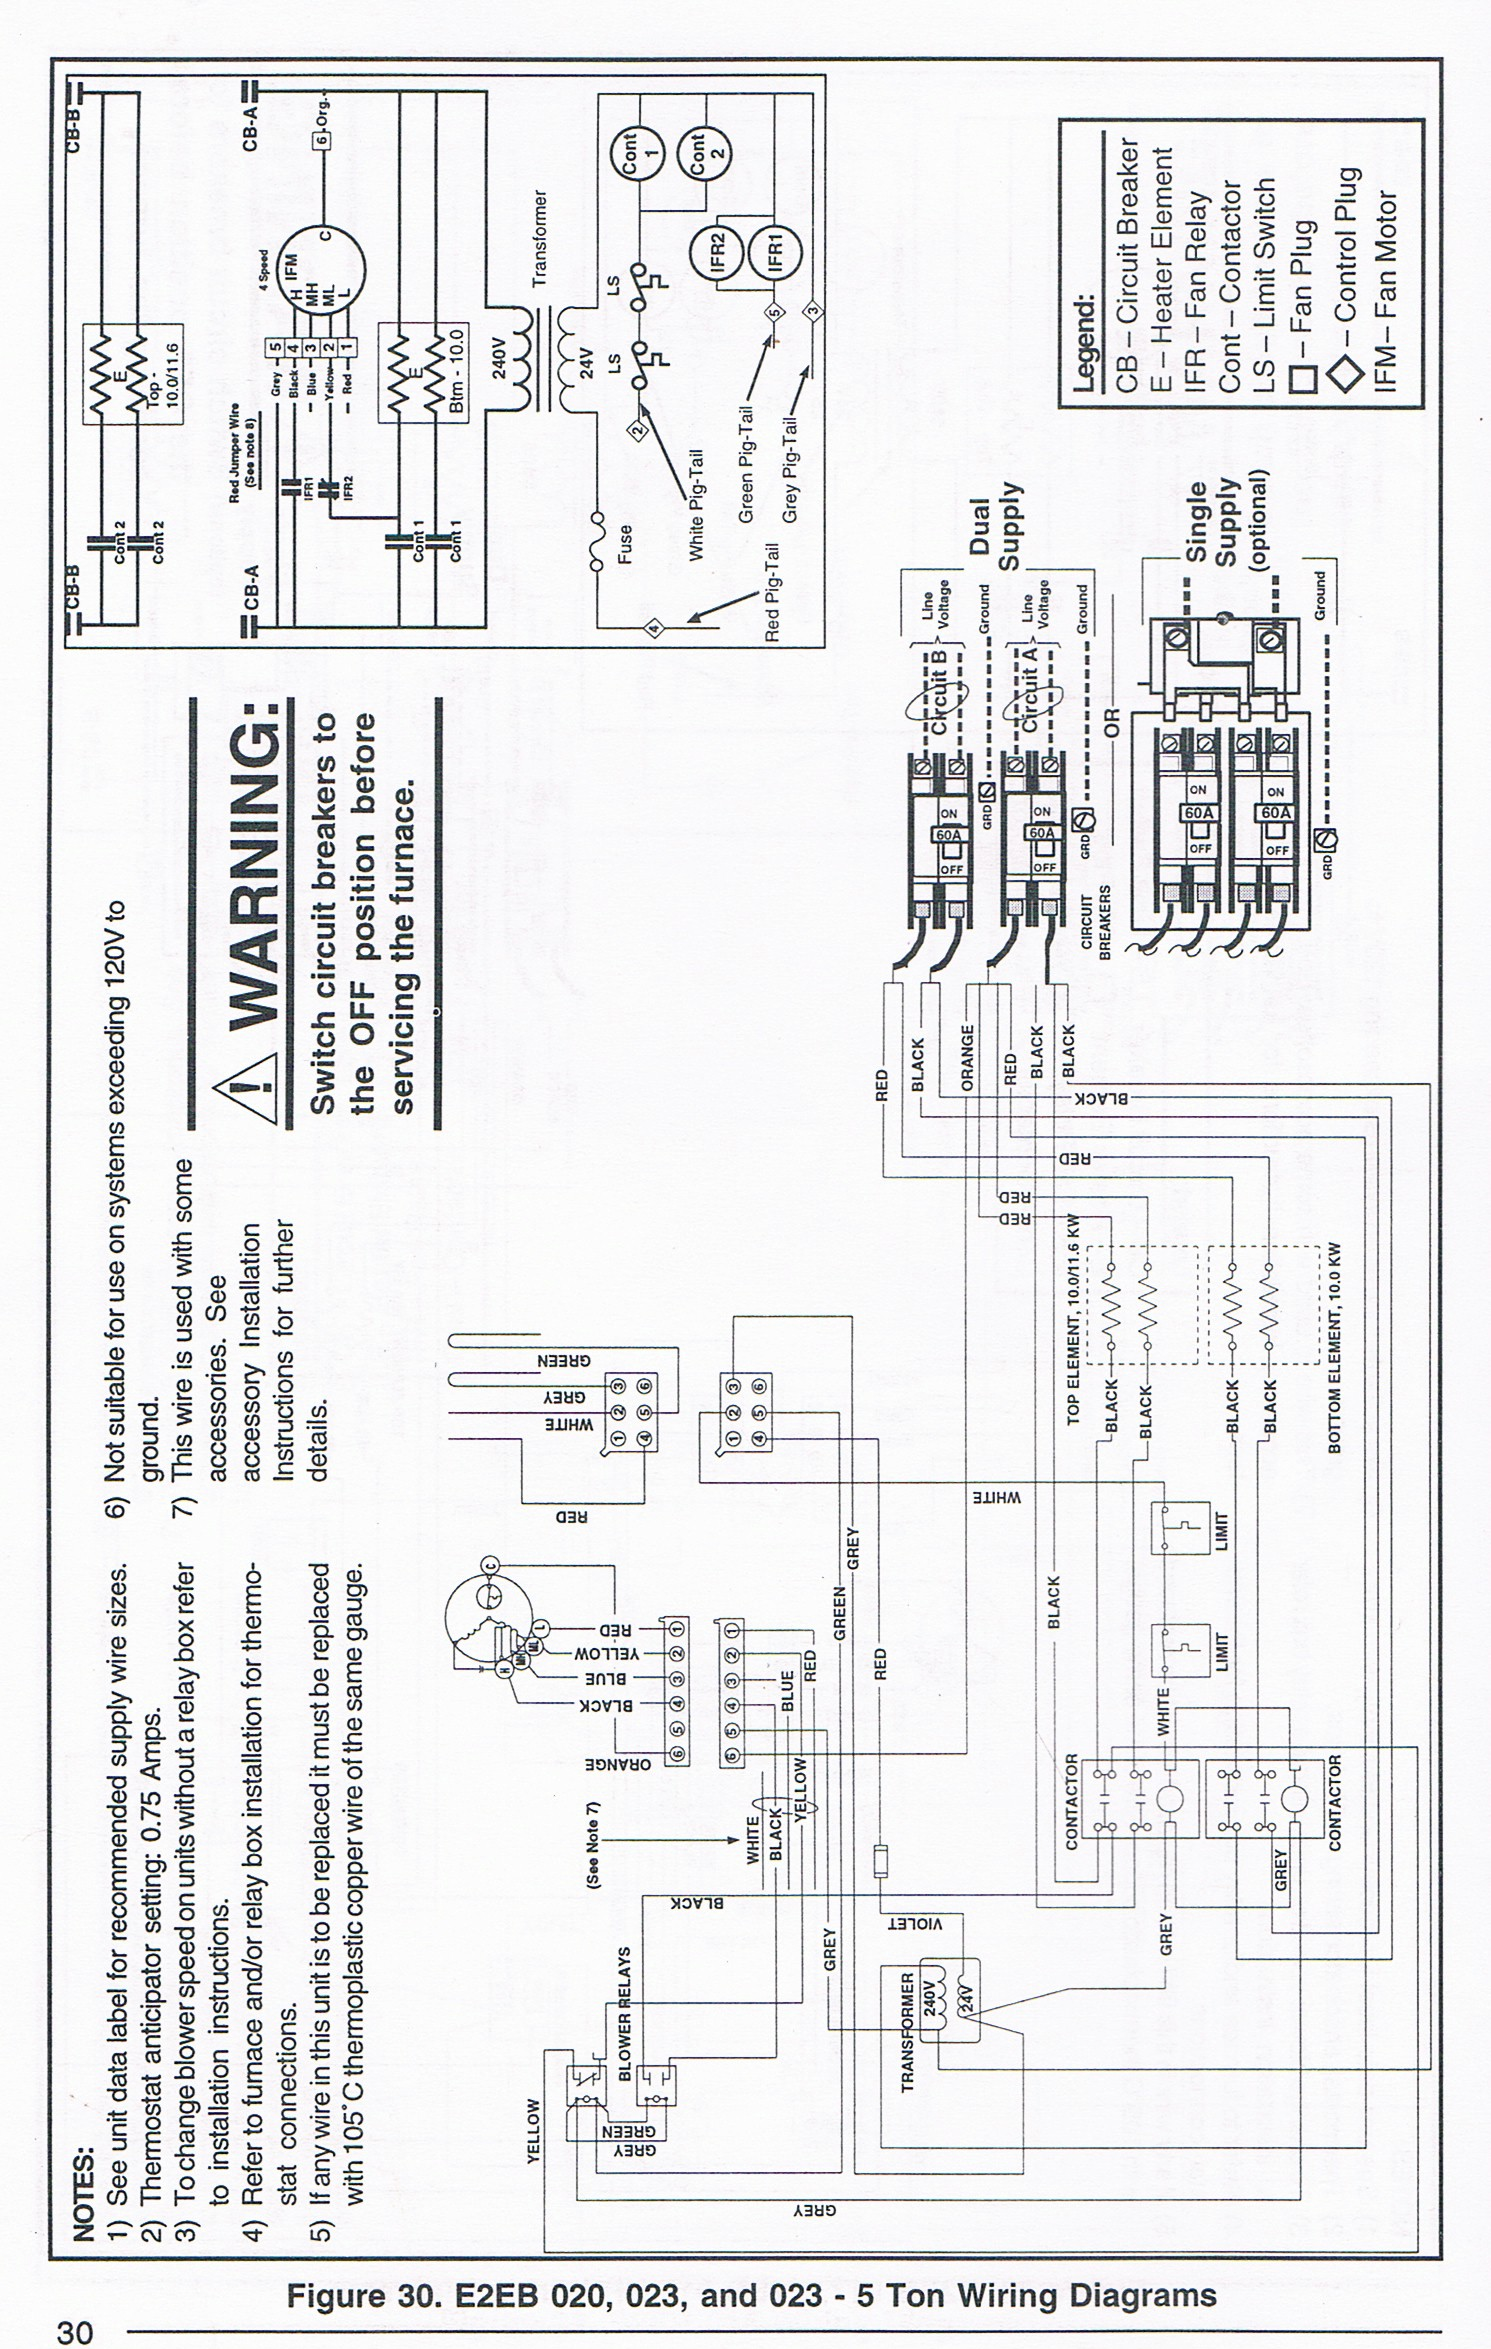 2011 05 04_234443_e2eb wiring diagram for intertherm eb series readingrat net Wiring Diagram for Miller Electric Furnace at aneh.co